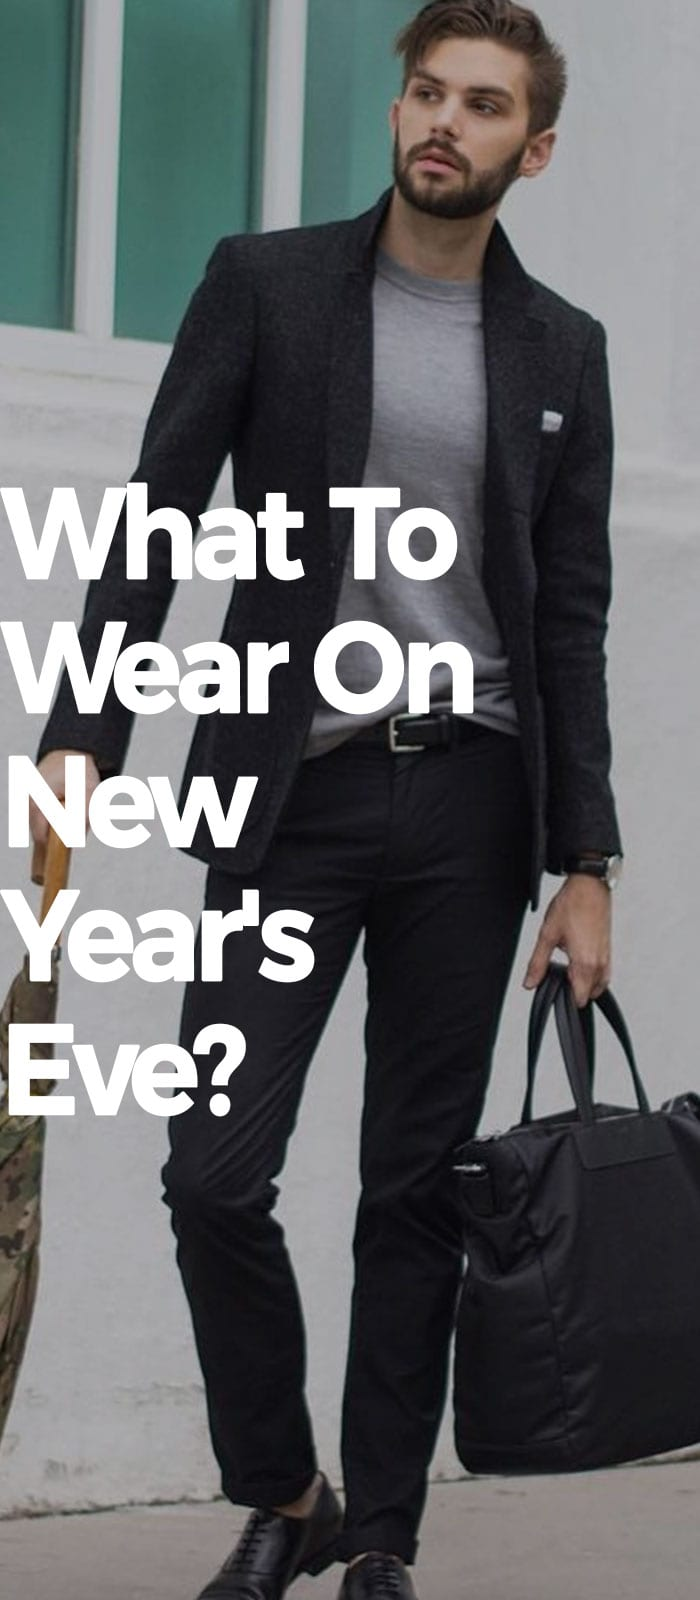 1cfe3d472890e 26 Trendy Men's New Year Outfit Ideas For Inspiration